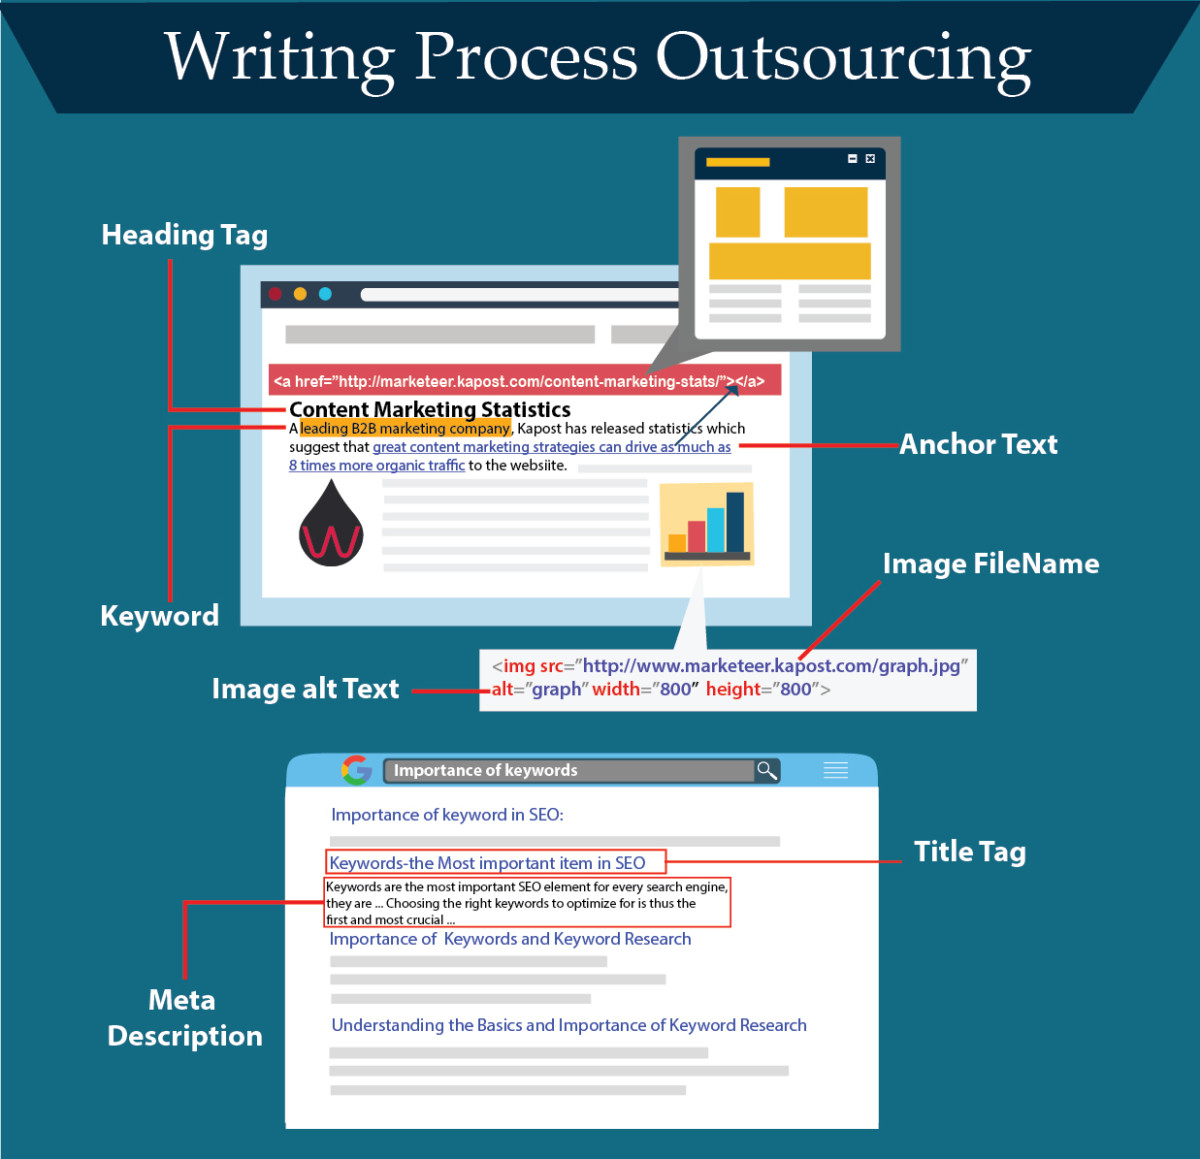 Writing_process_outsourcing-01 Will Writing Process Outsourcing take over SEO Content Marketing?